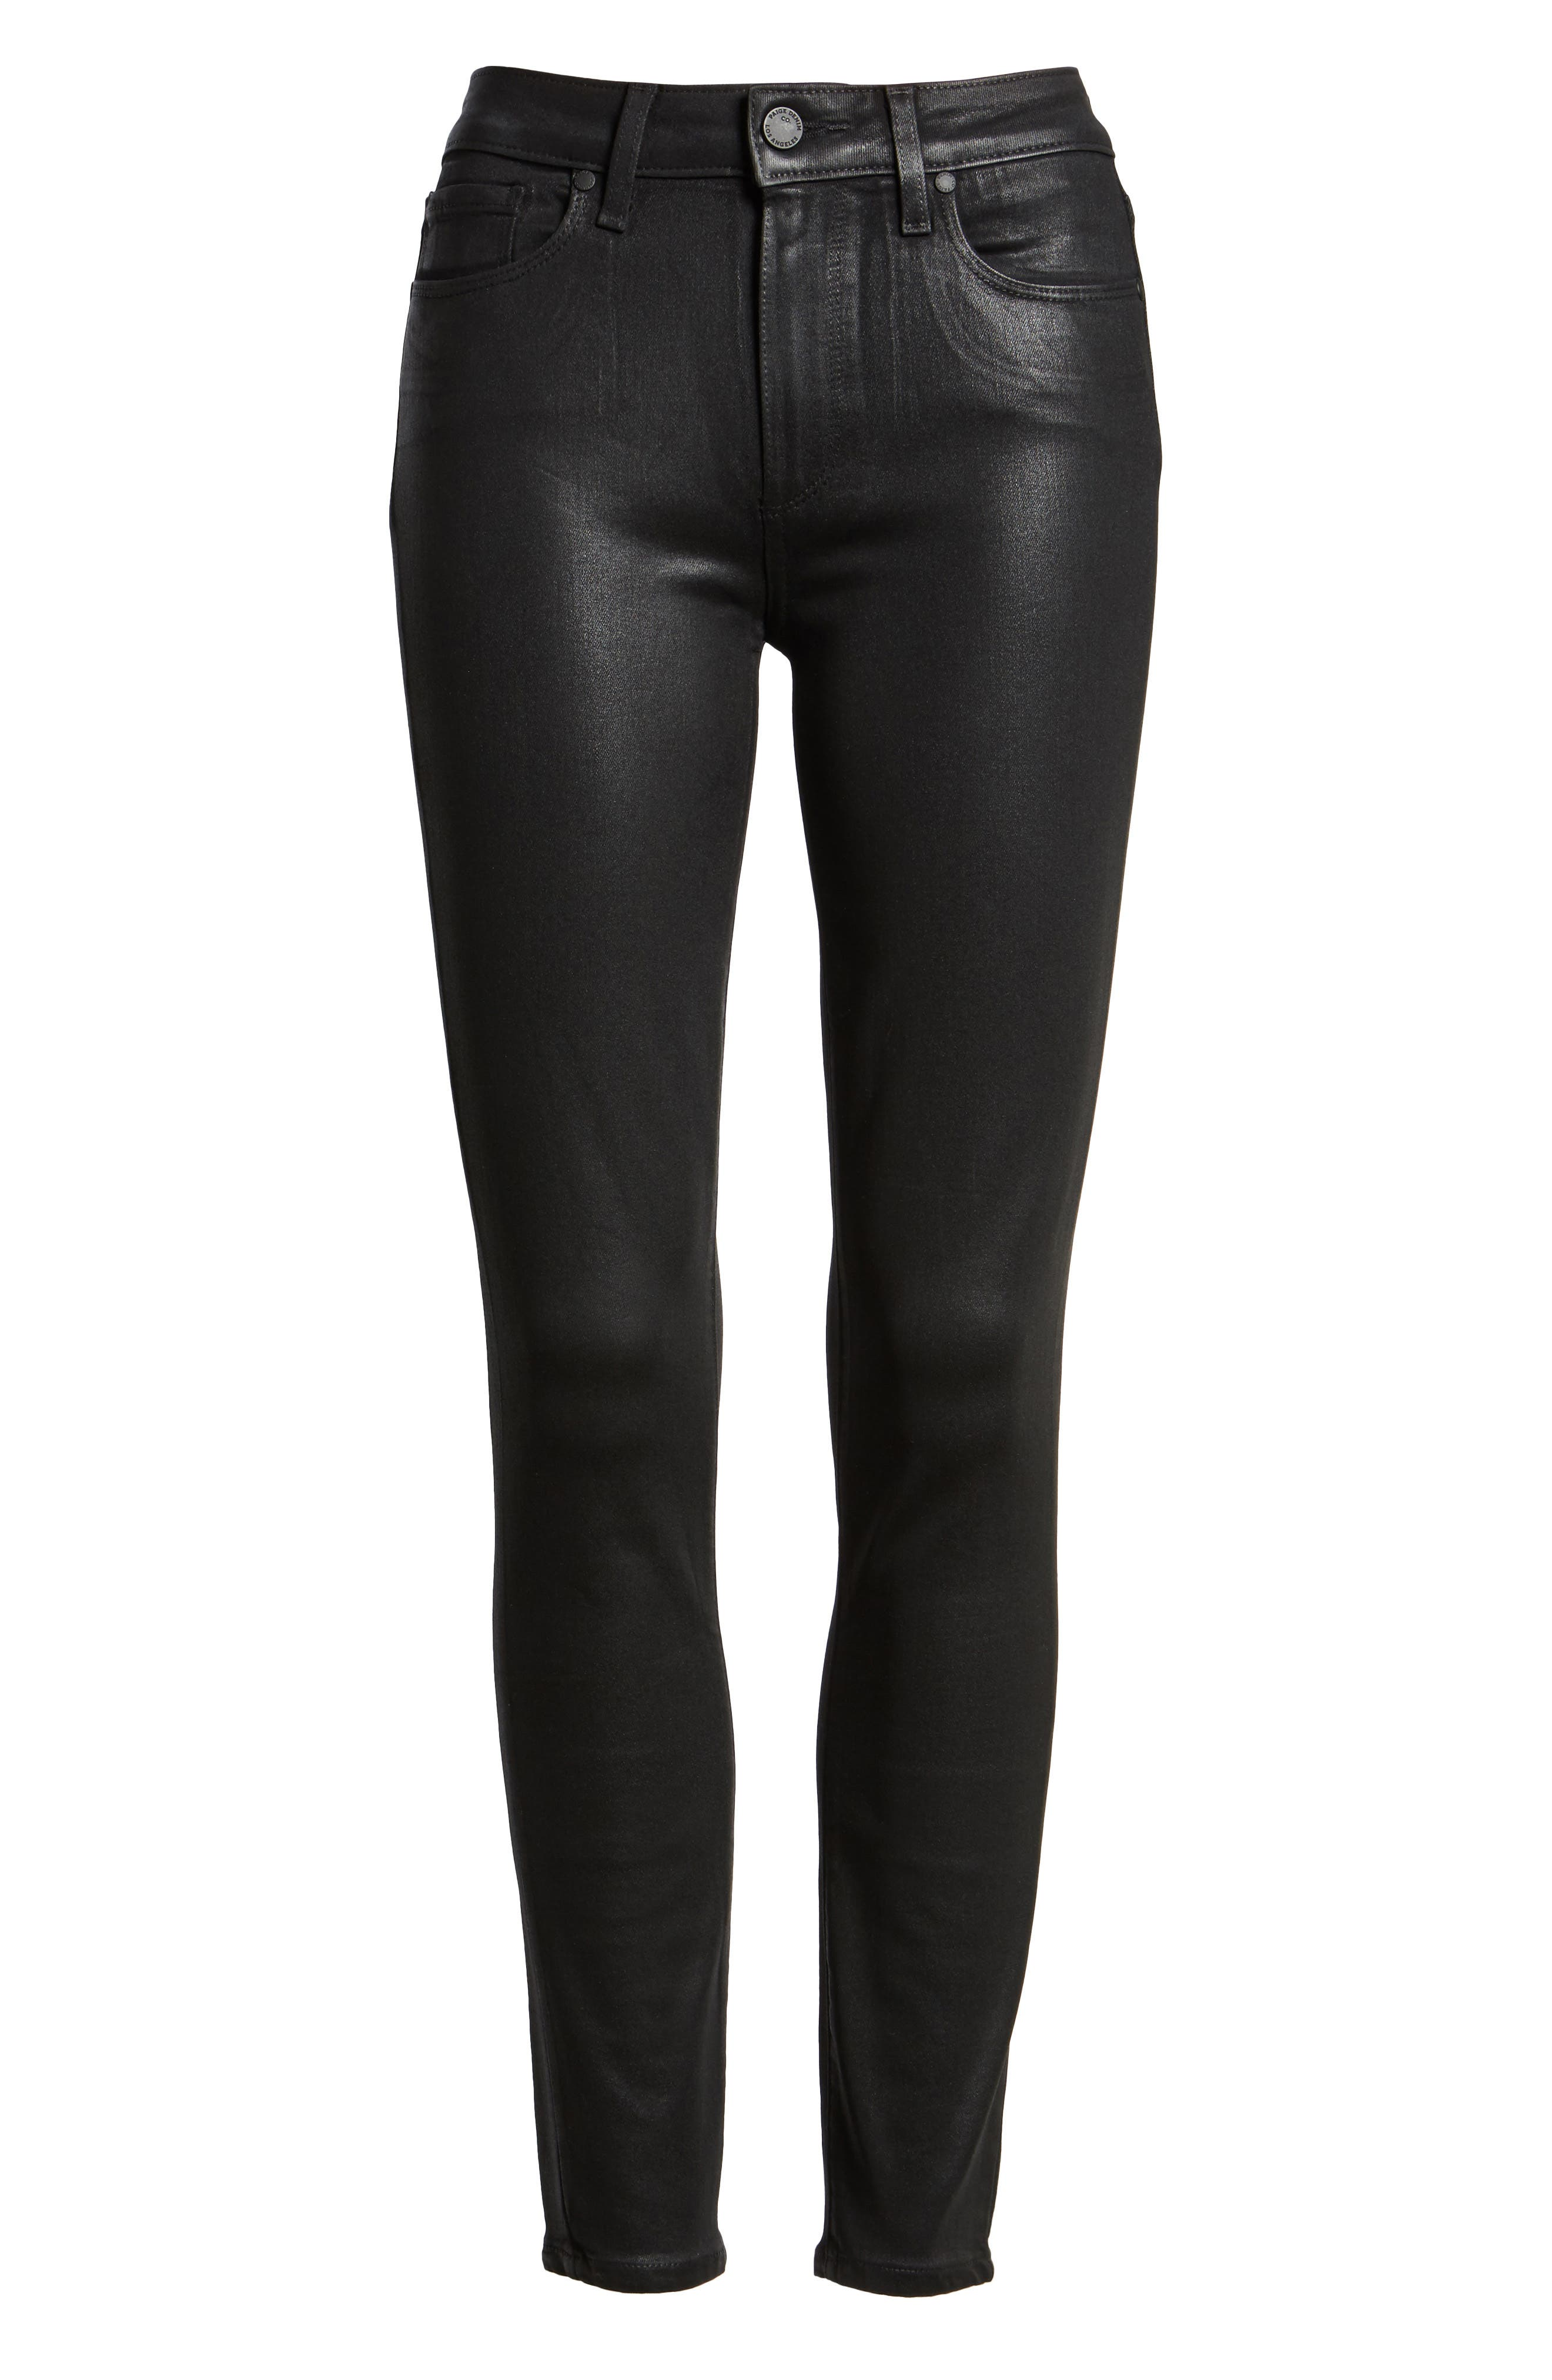 Transcend - Hoxton High Waist Ankle Skinny Jeans,                             Alternate thumbnail 7, color,                             LUXE BLACK COATED